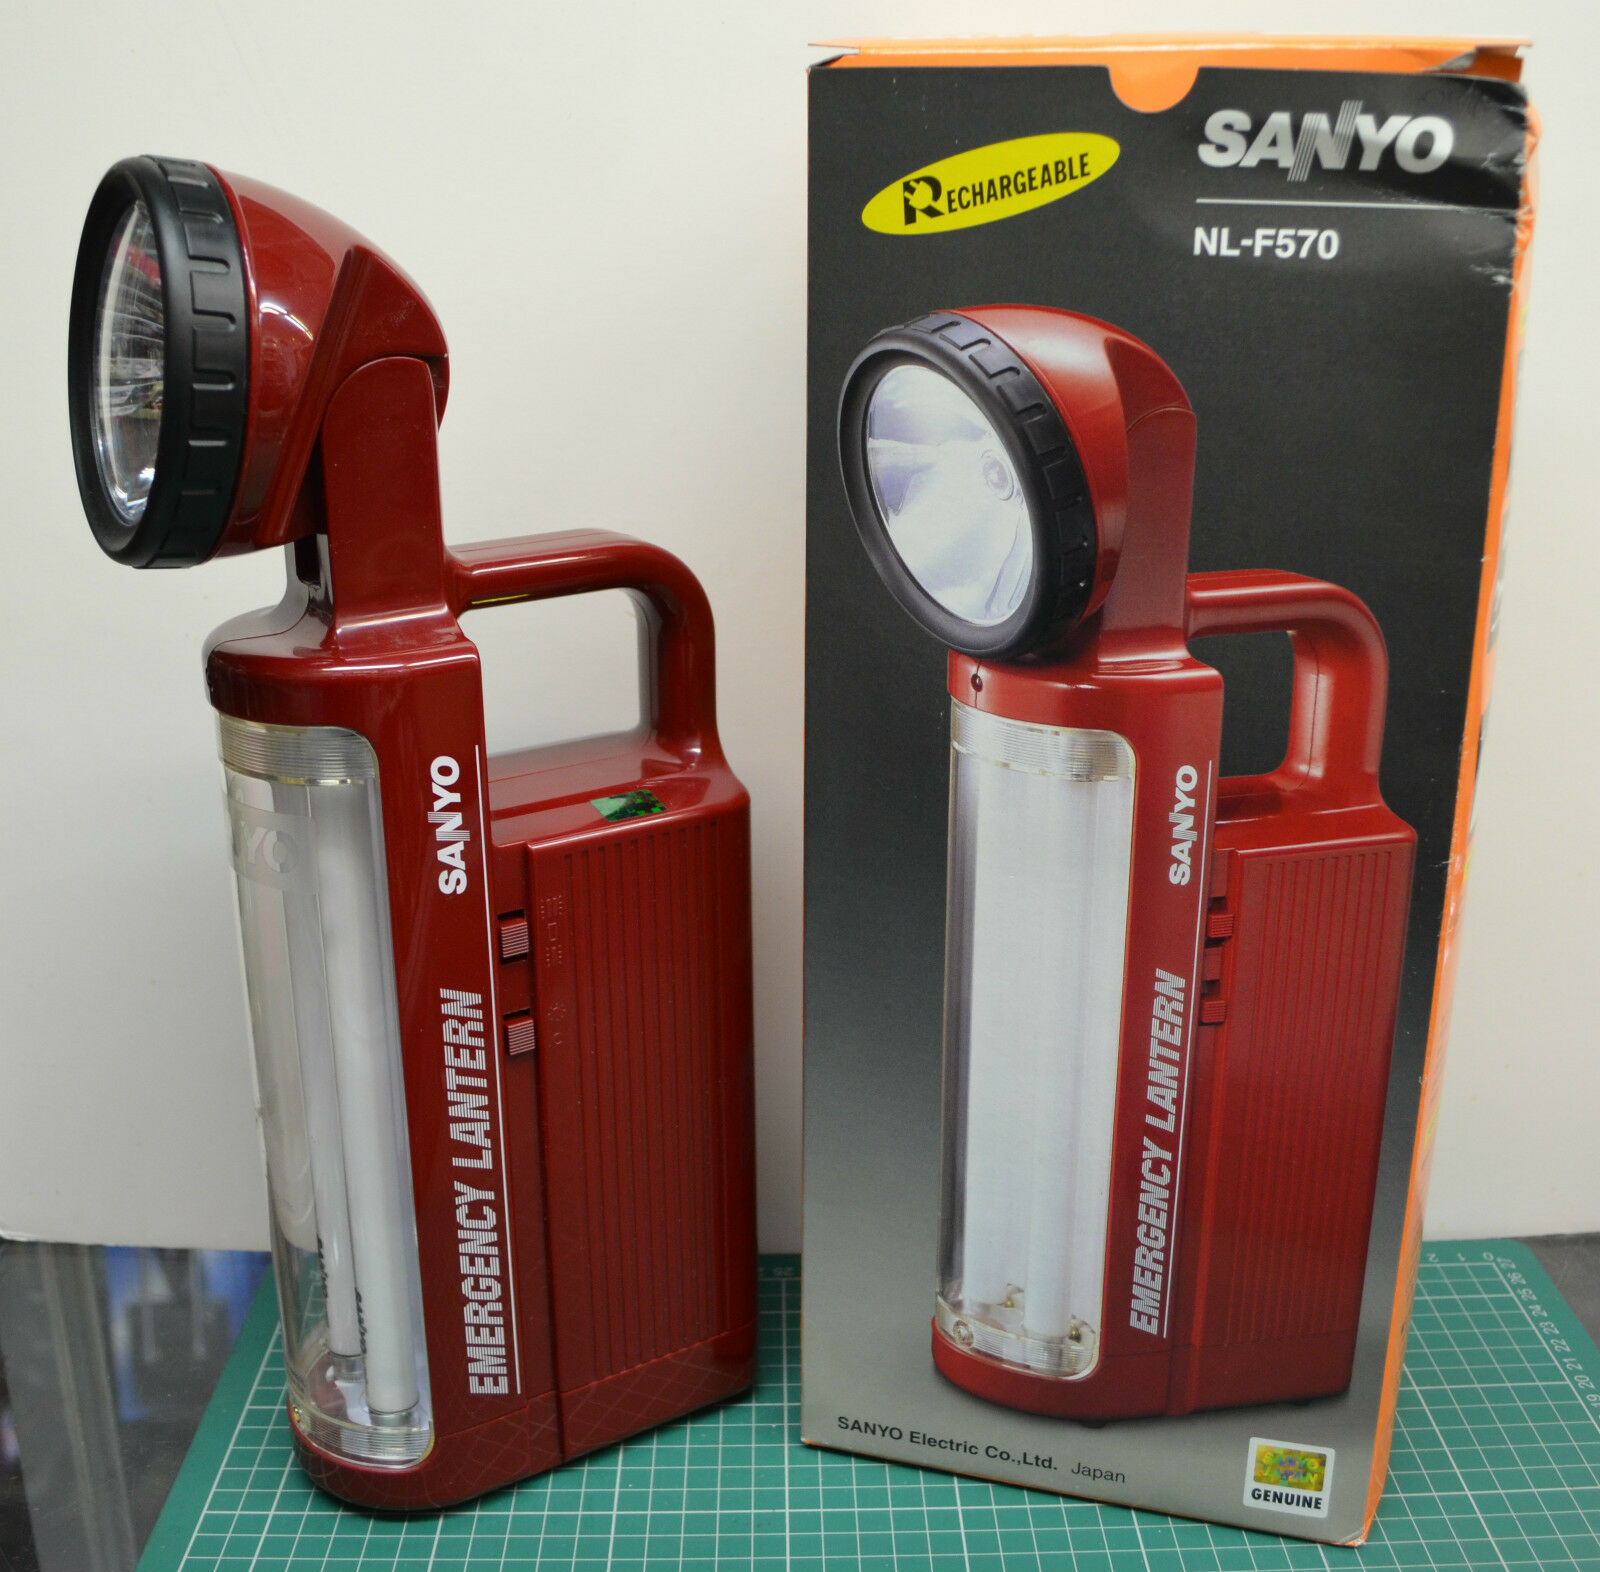 SALE Sanyo NL-F570 Rechargeable Rechargeble  Emergency Torch Tubelight Spotlight  limited edition